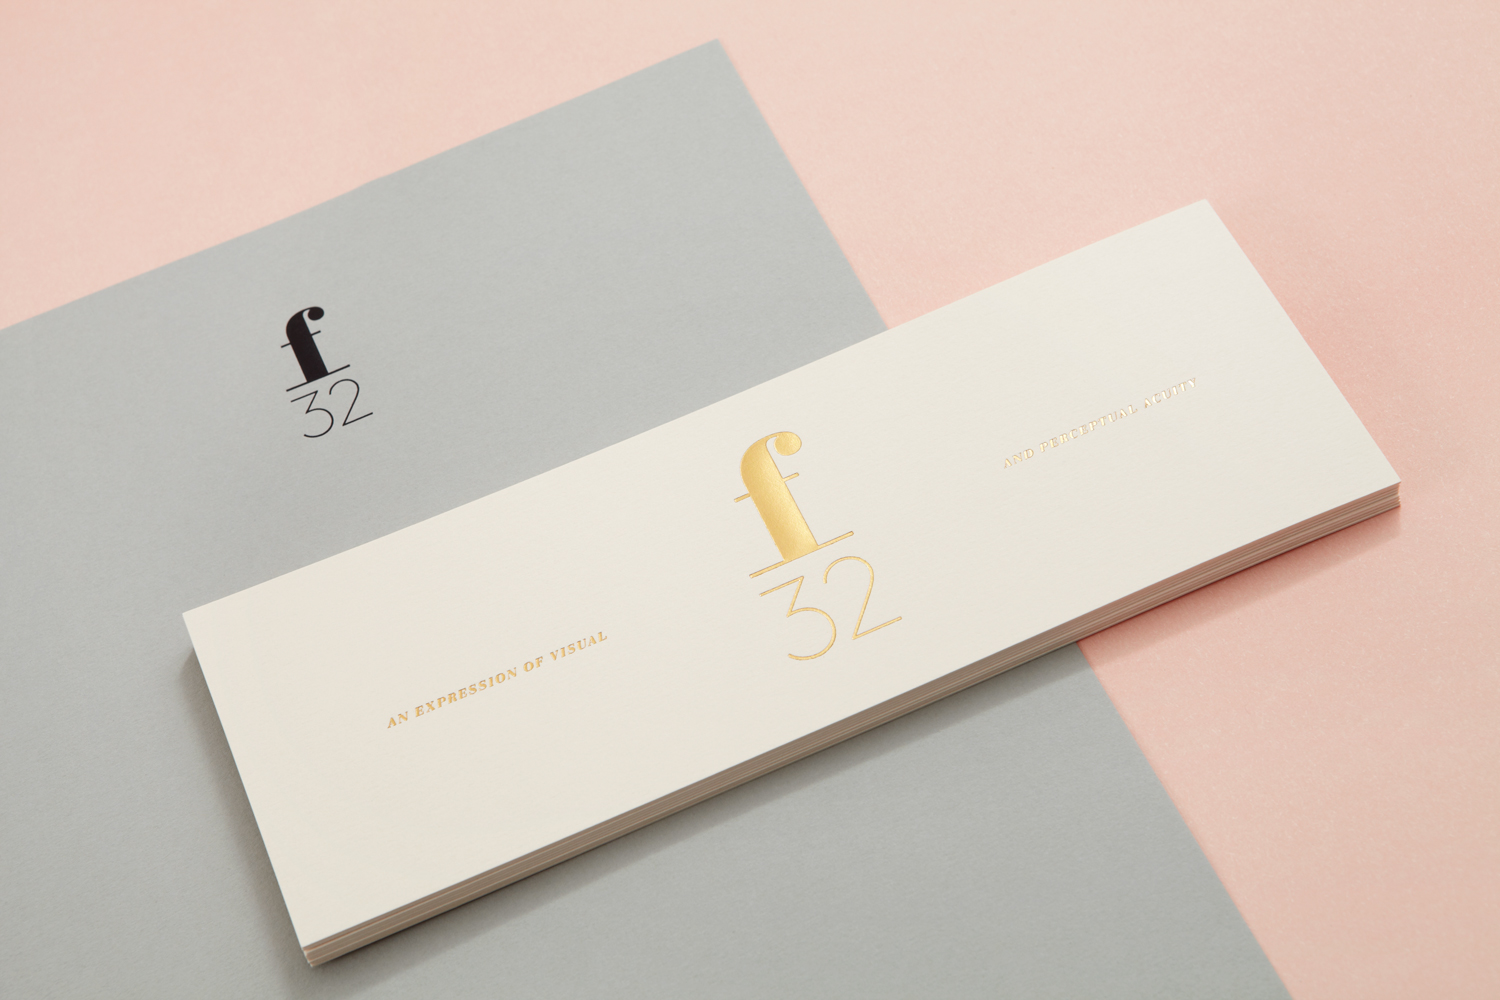 Brand identity and block foiled stationery by Blok for LA based trend-watching company f32